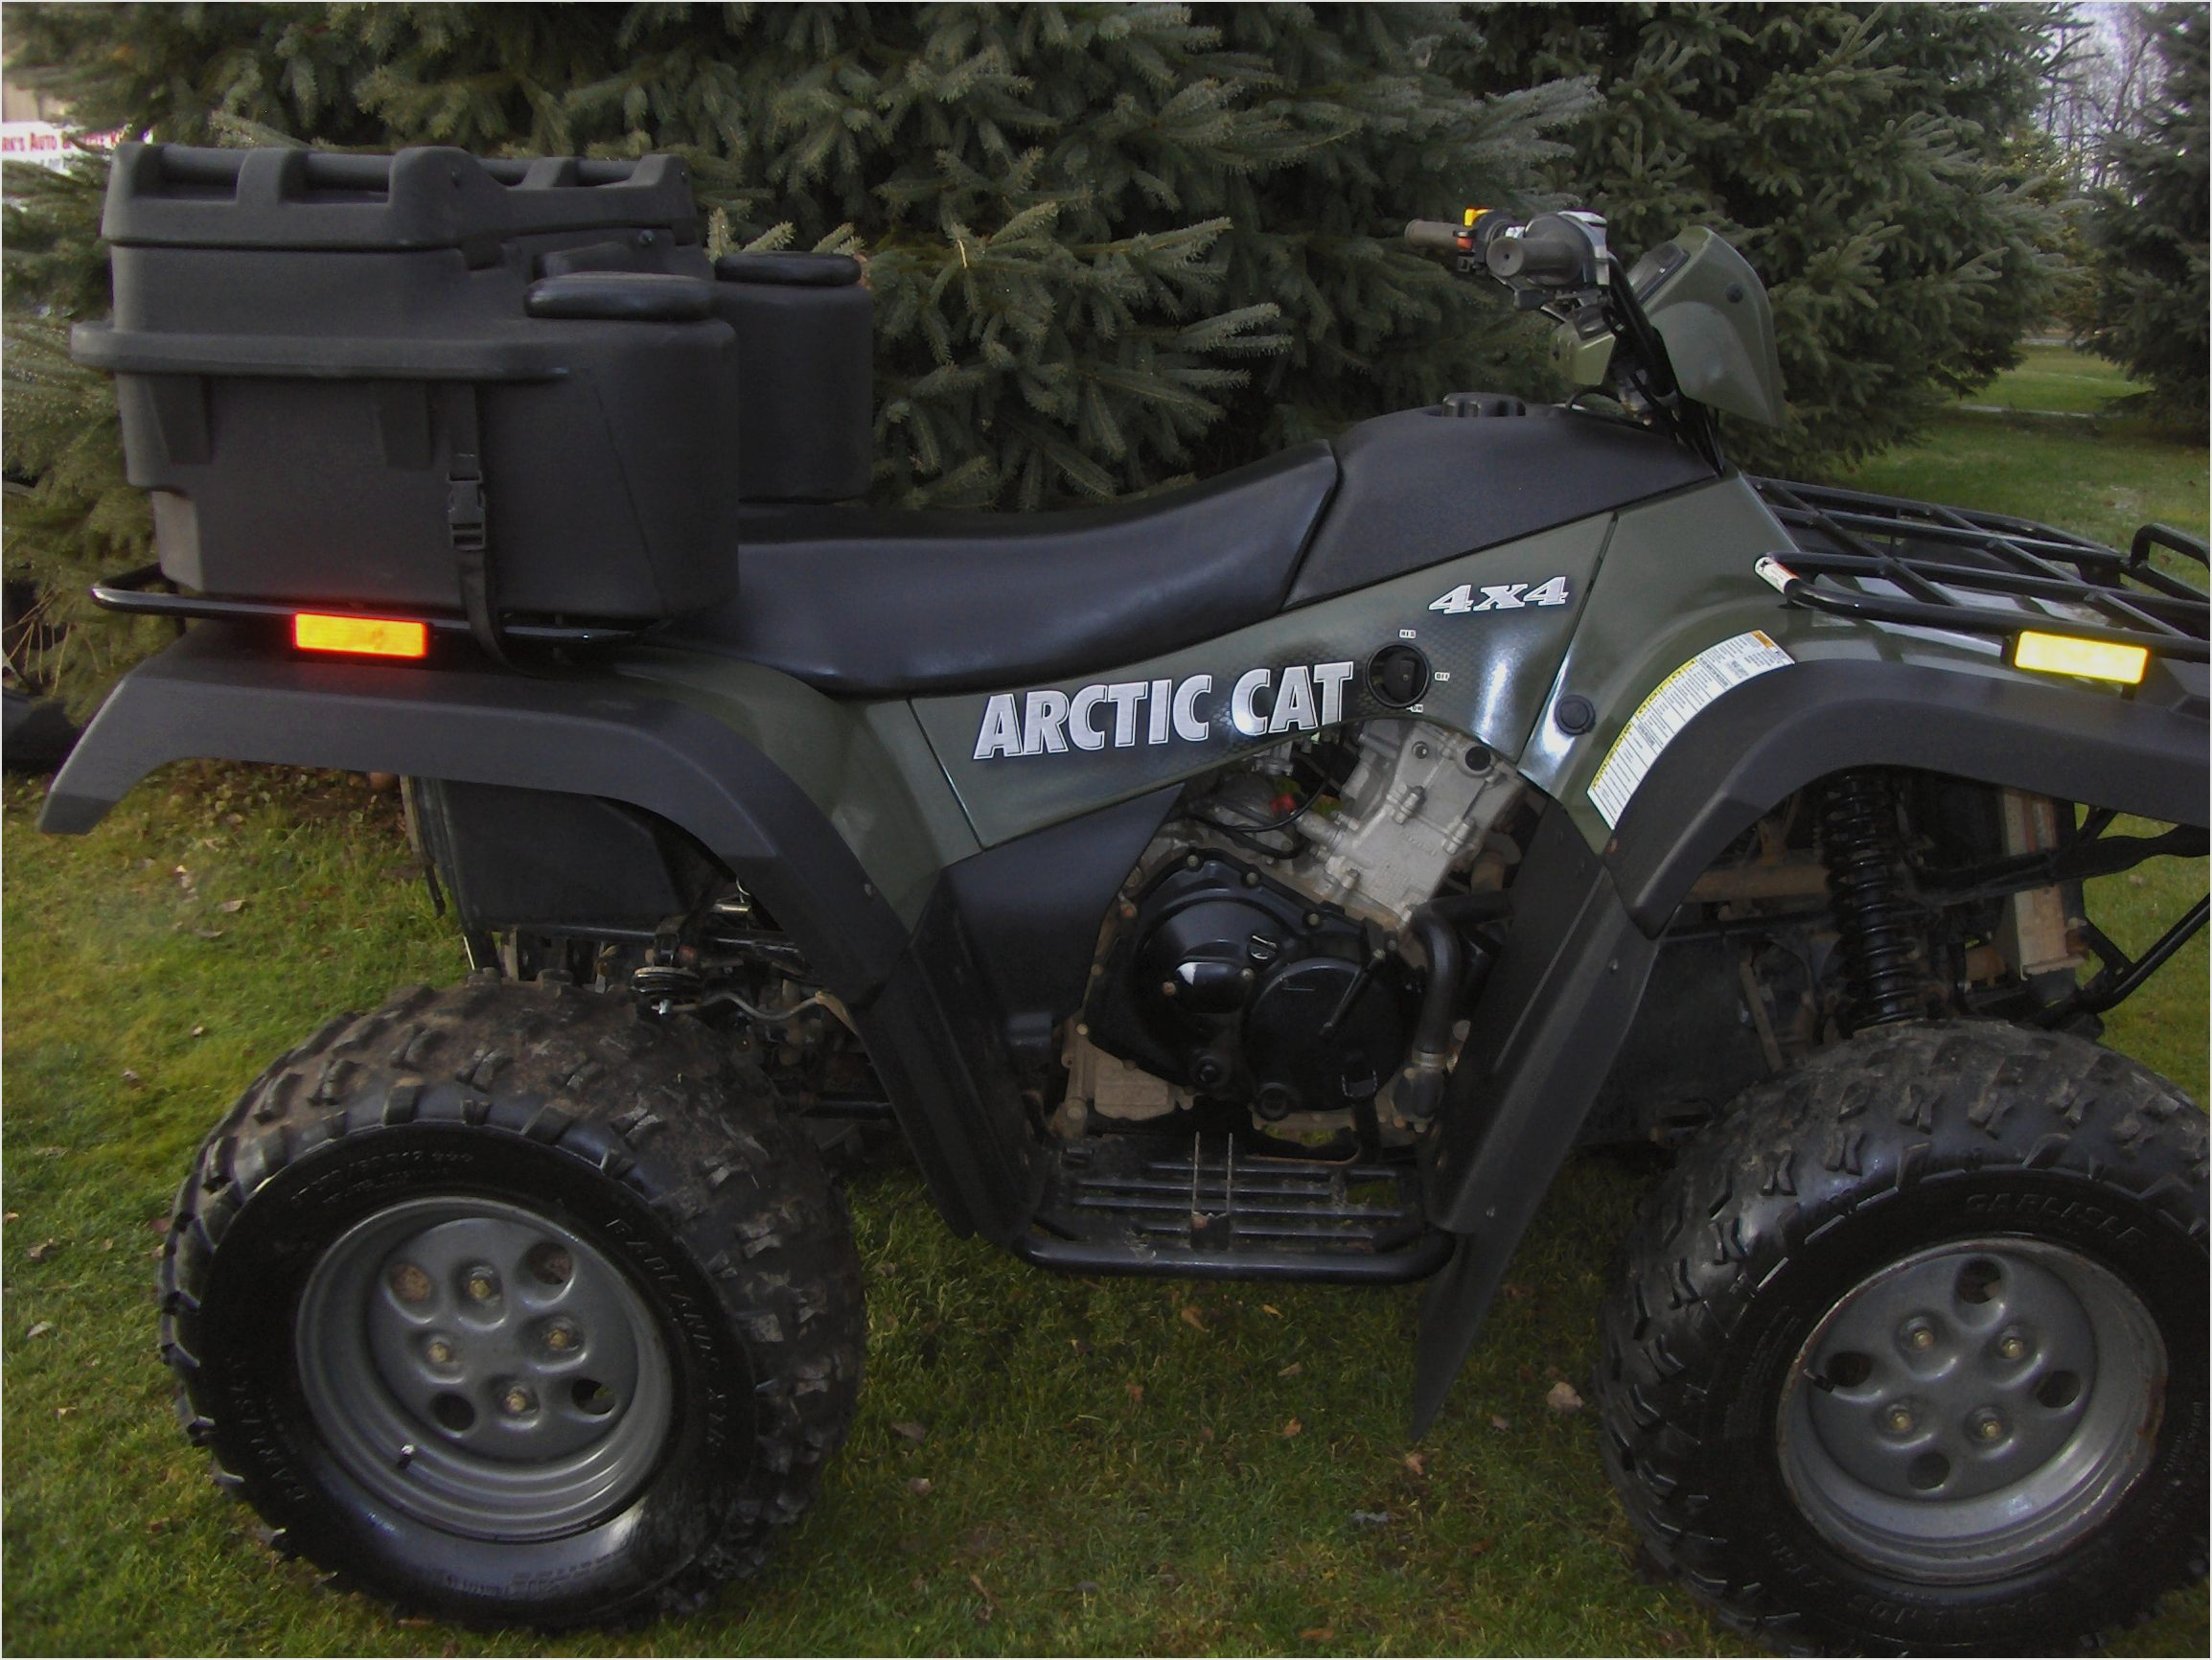 Watch additionally Arctic Cat 500 2002 besides Watch as well Watch as well 2015 Utv Buyers Guide. on 2000 arctic cat 300